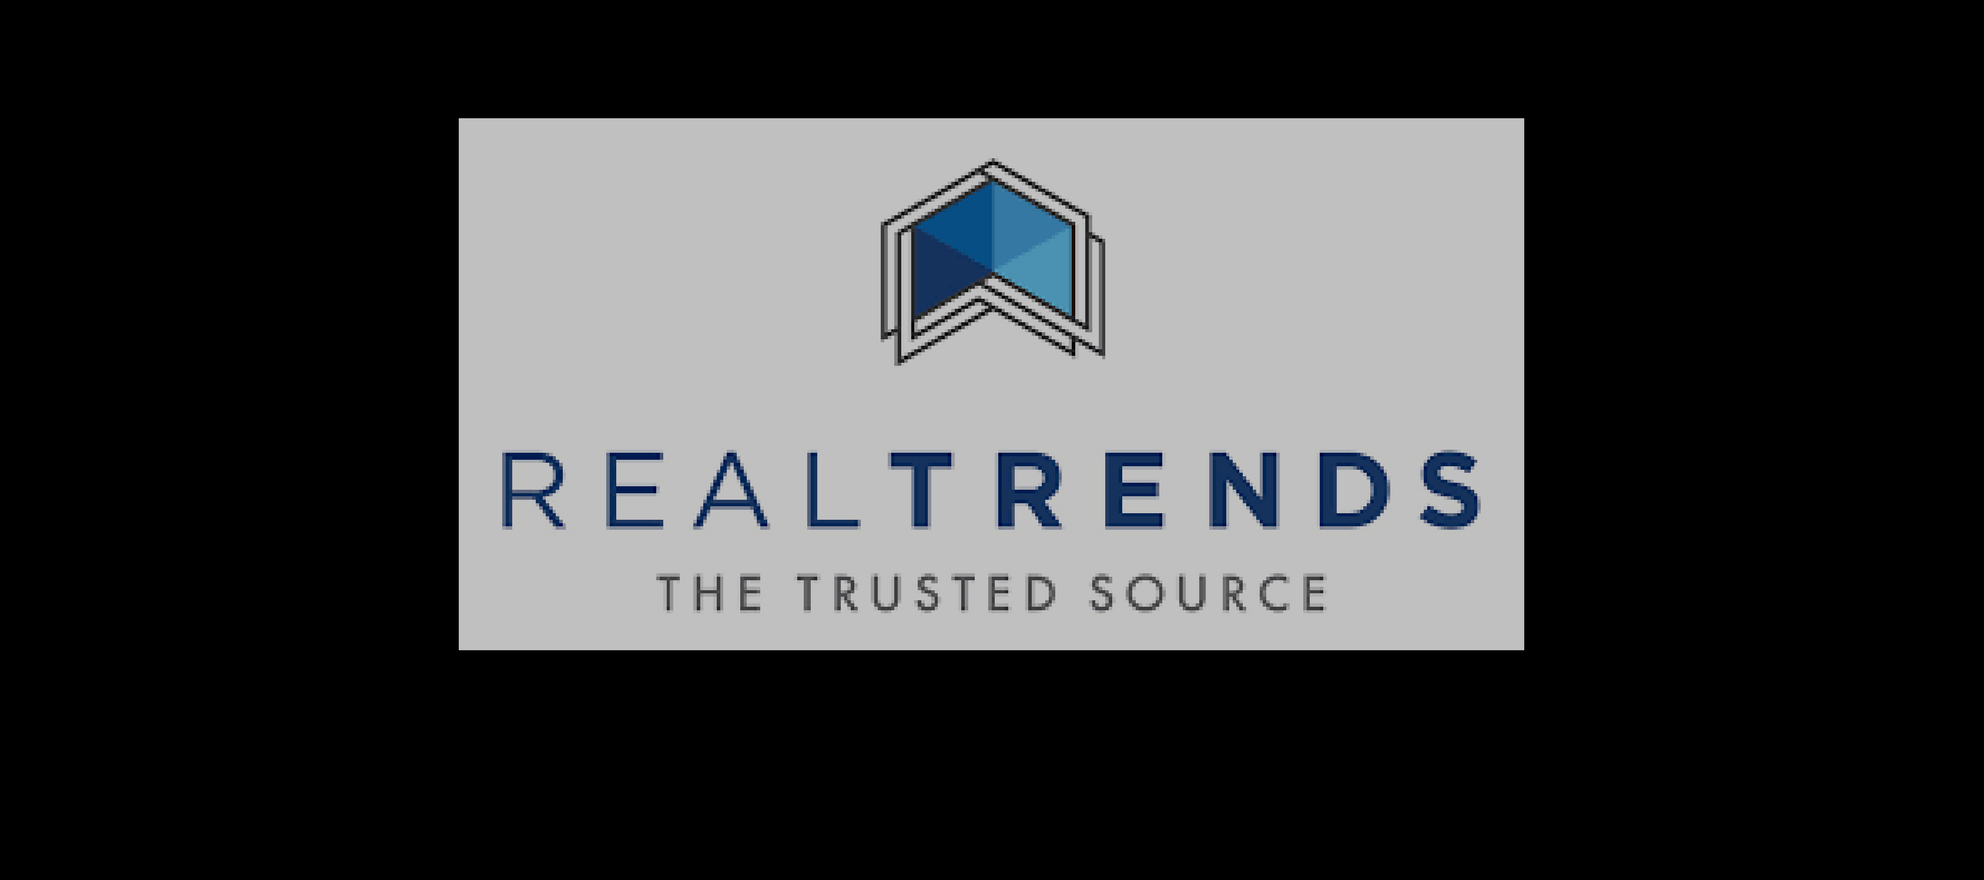 Real Trends Best Real Estate Agents List